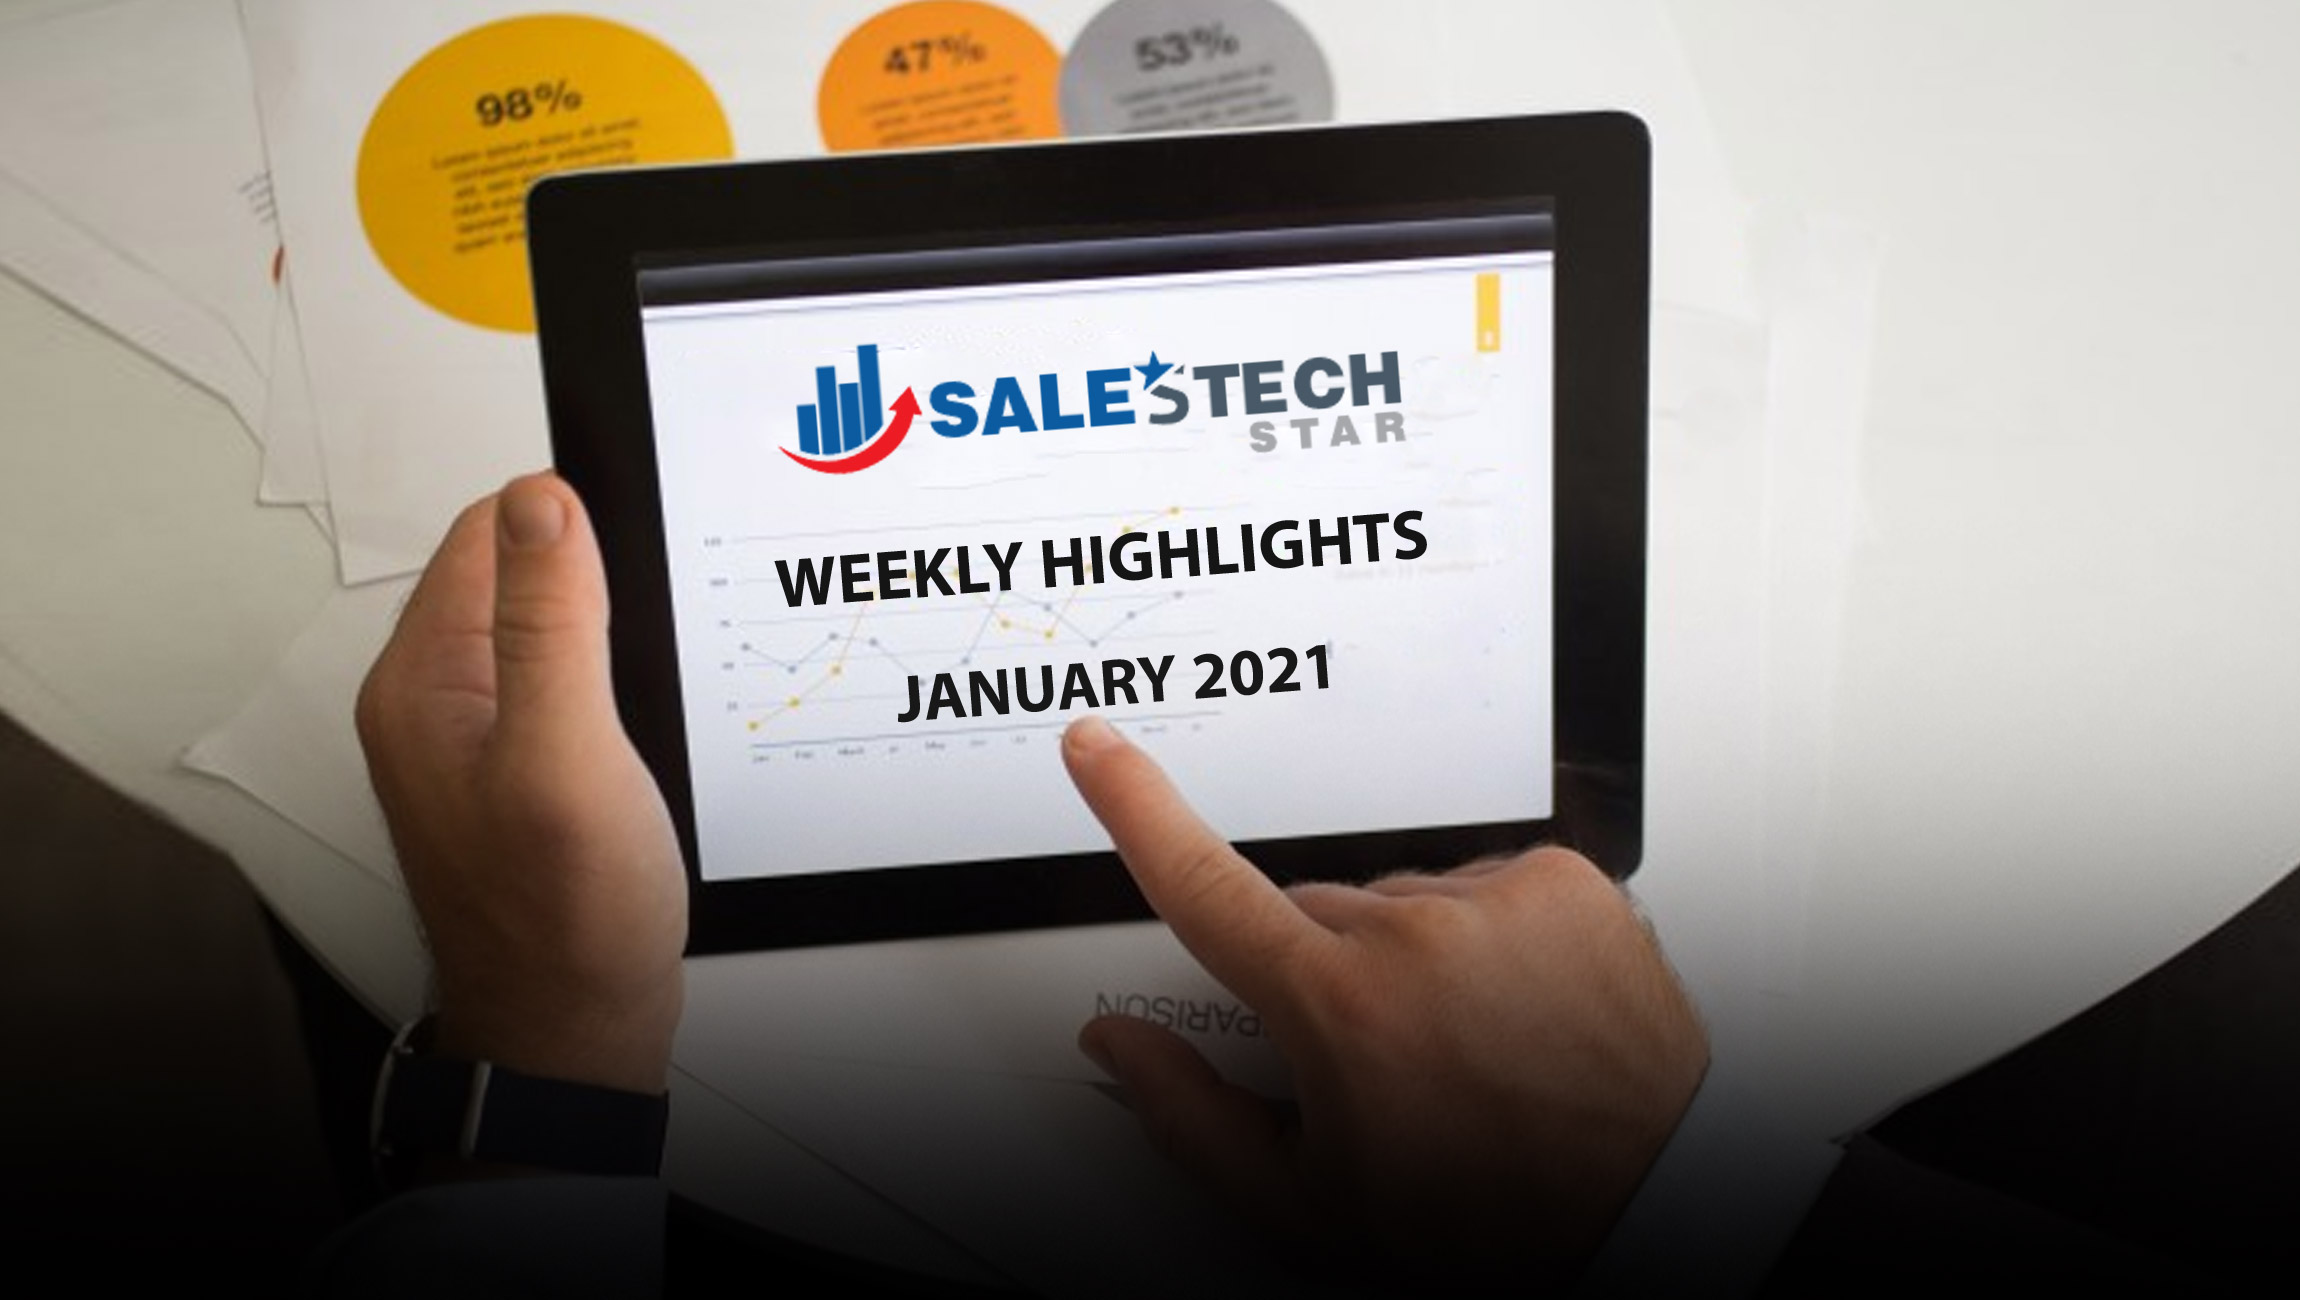 Sales Technology Highlights of The Week: 04-January-2021: Featuring Mastercard, FedEx, MediaFly, Outbrain and more!